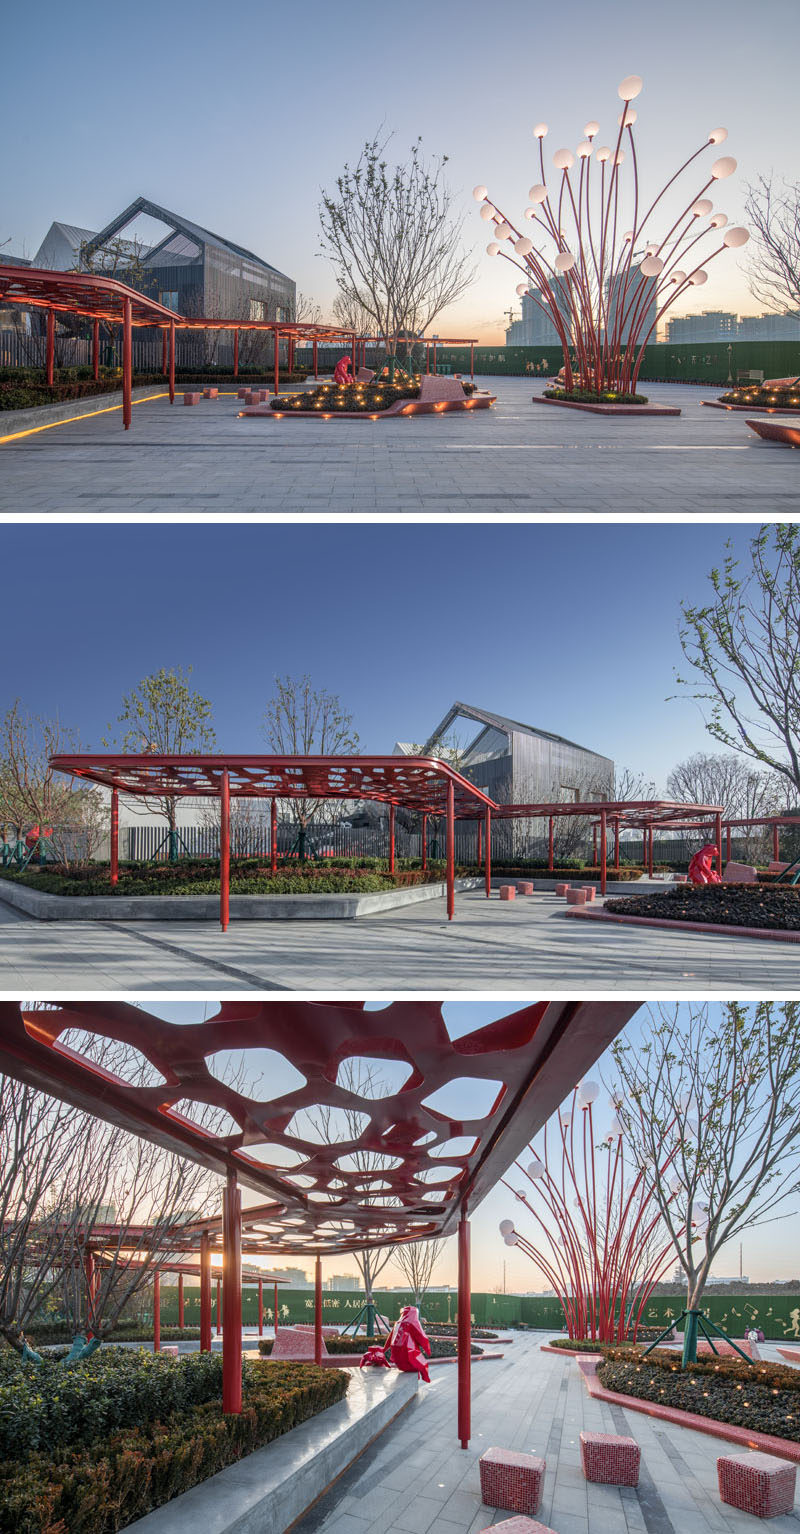 This modern public plaza has a variety of seating options, like a built-in concrete bench that sits underneath a red pergola and that wraps around the planters. #Park #Plaza #LandscapeDesign